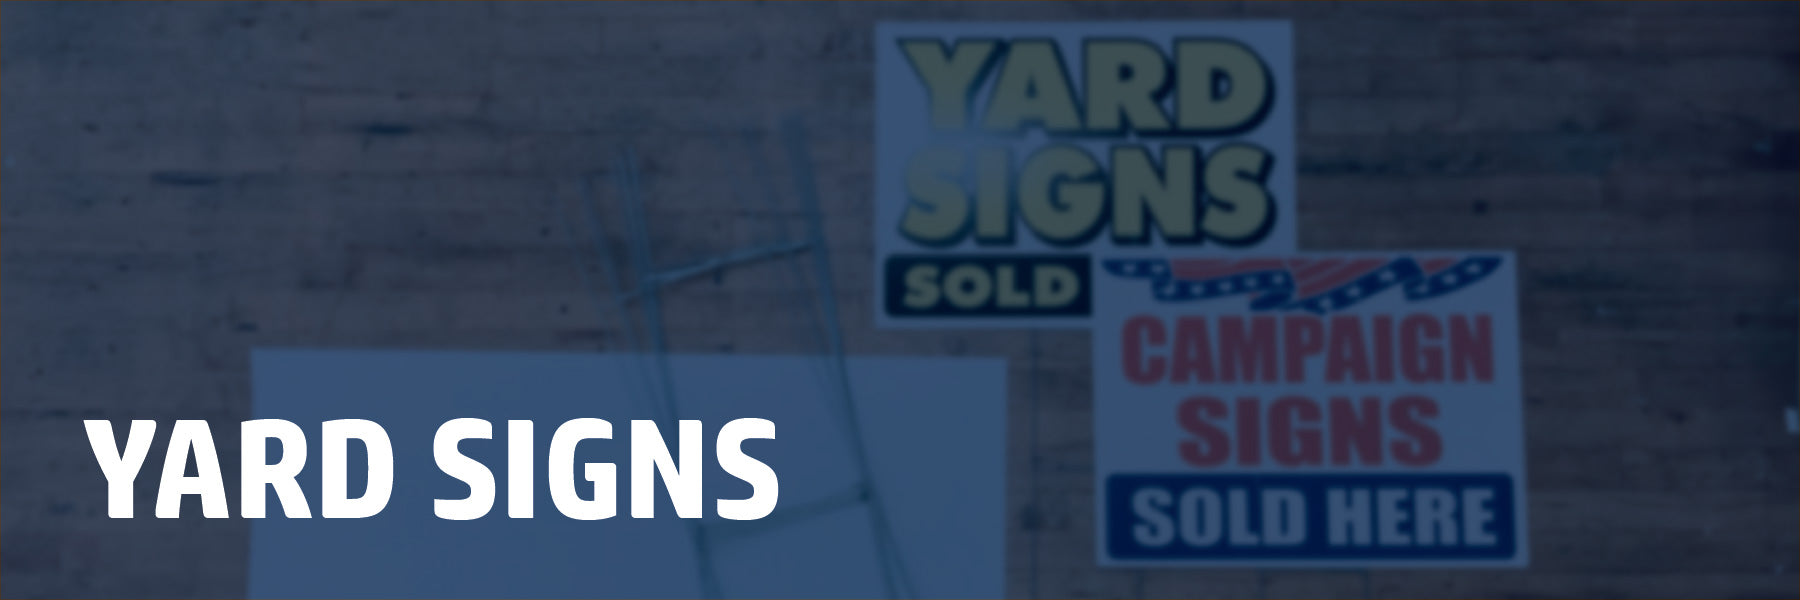 cheap plastic yard signs election campaign signs